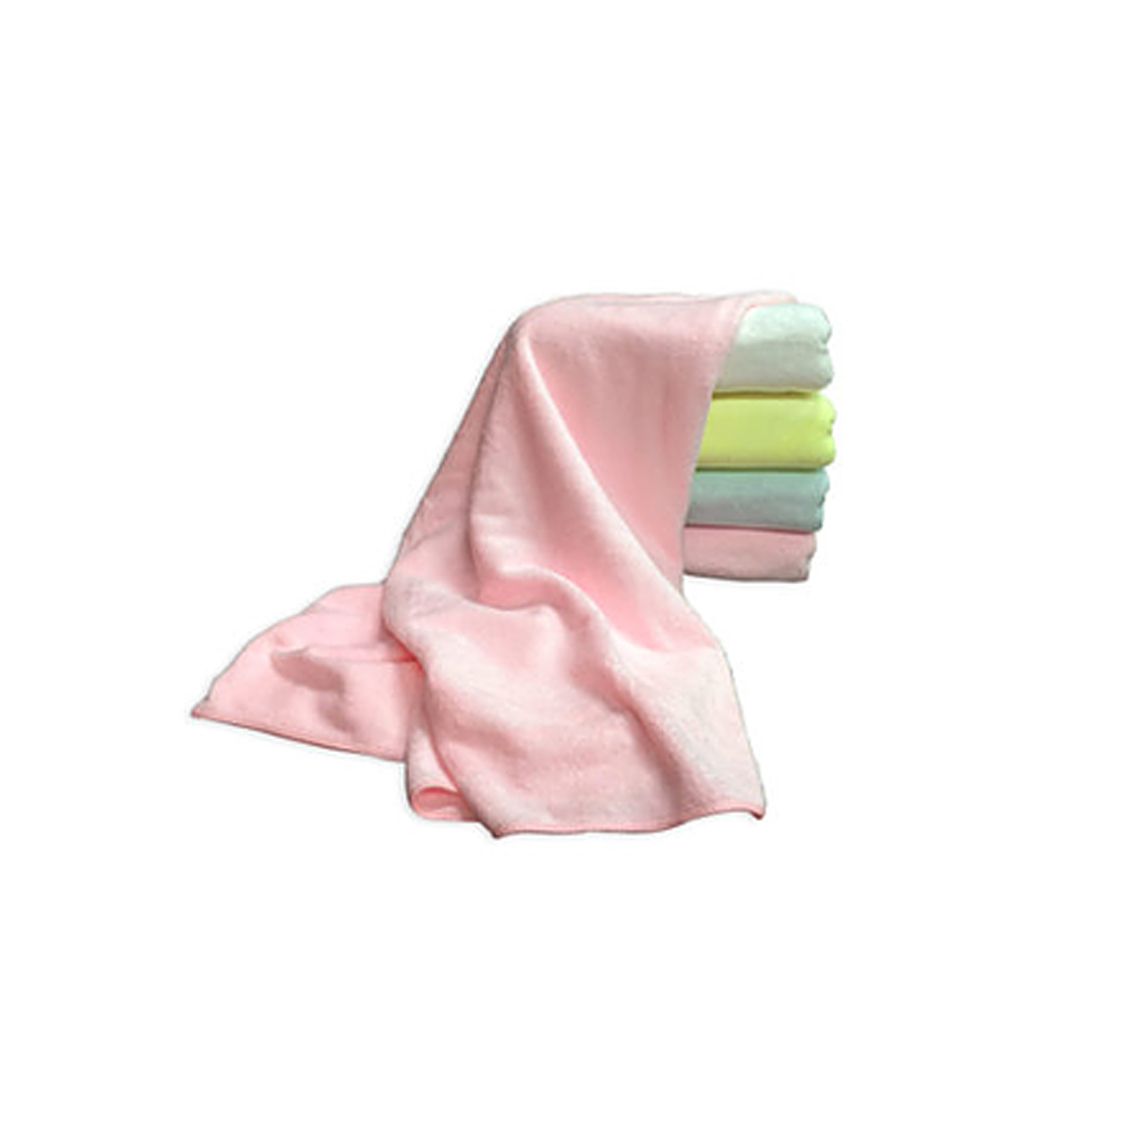 FG312 - Super Soft Microfibre Bath Towel 2